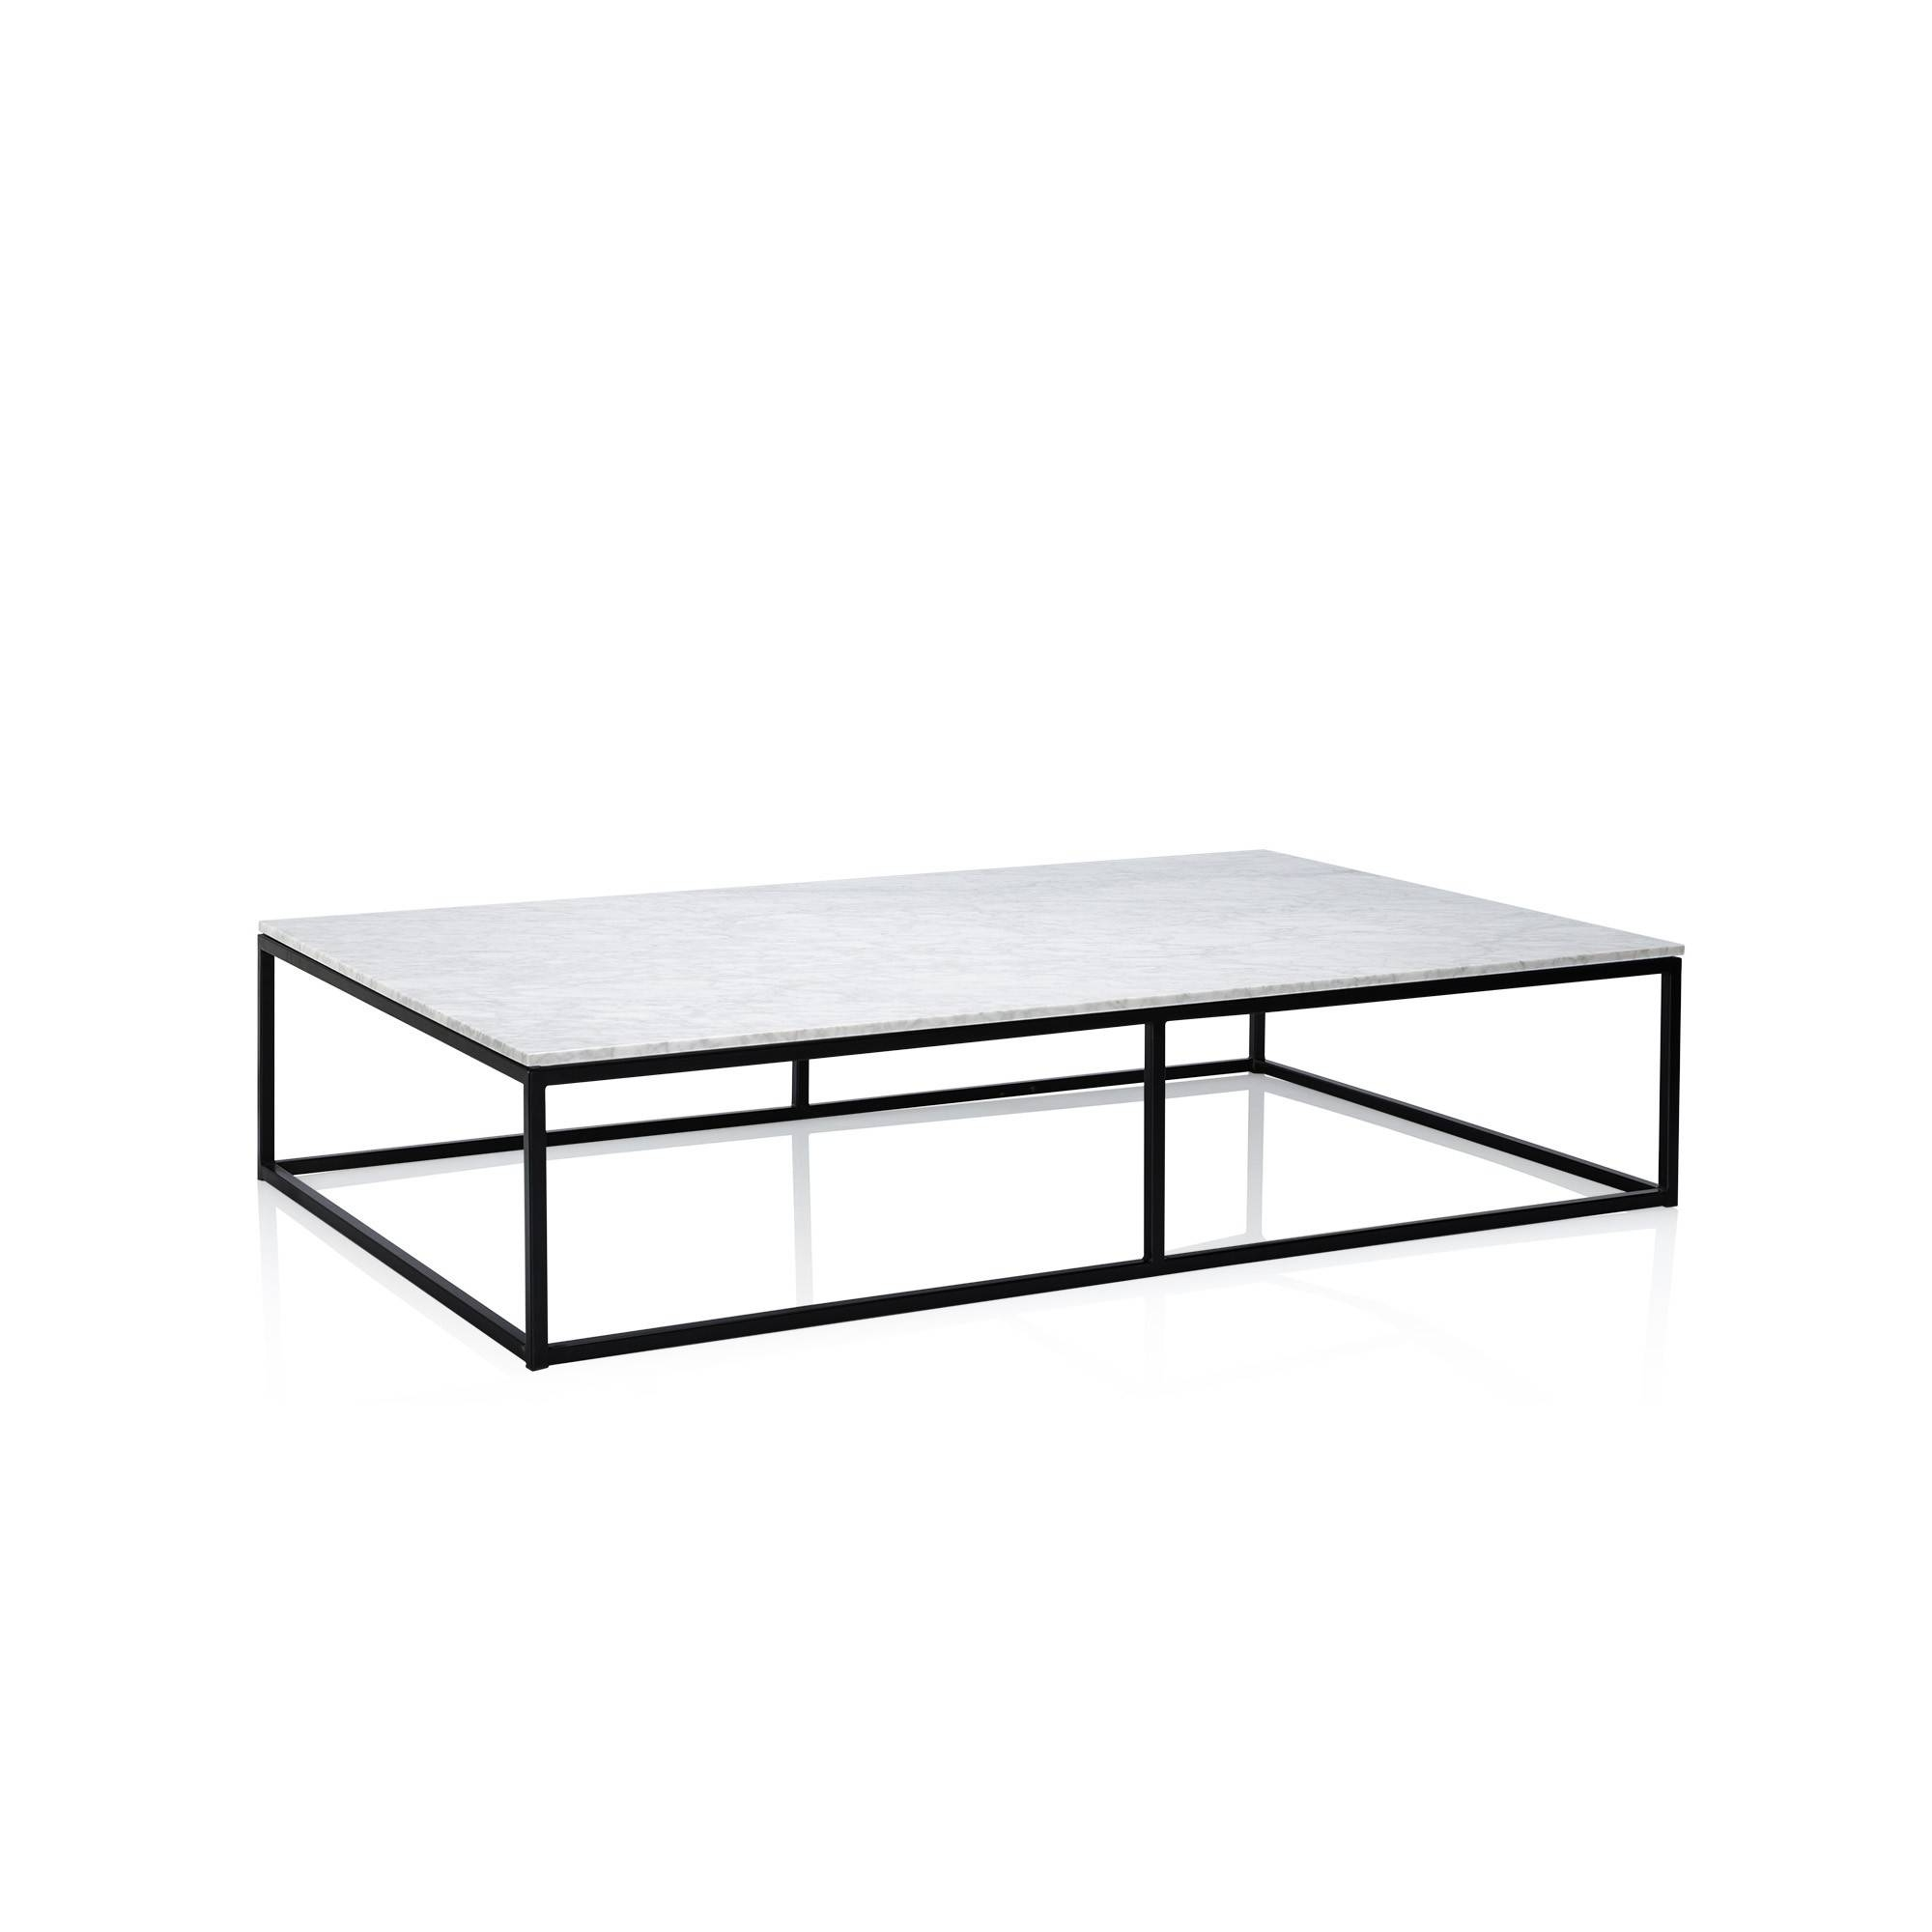 Soho Marble Coffee Table with Soho Coffee Tables (Image 25 of 30)